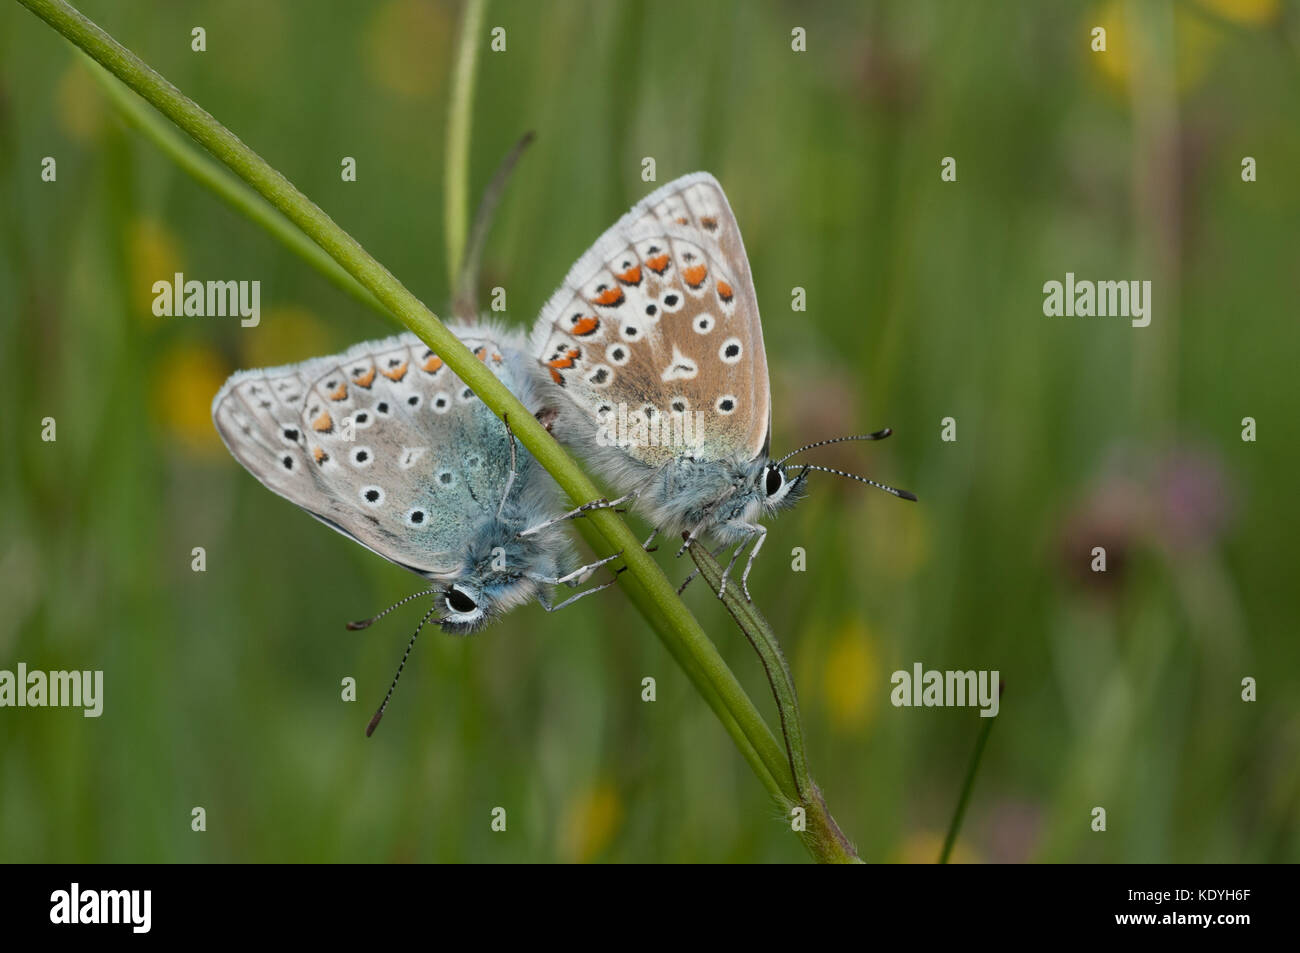 Common blue butterflies mating, once a common species this is now a rapidly declining one. - Stock Image